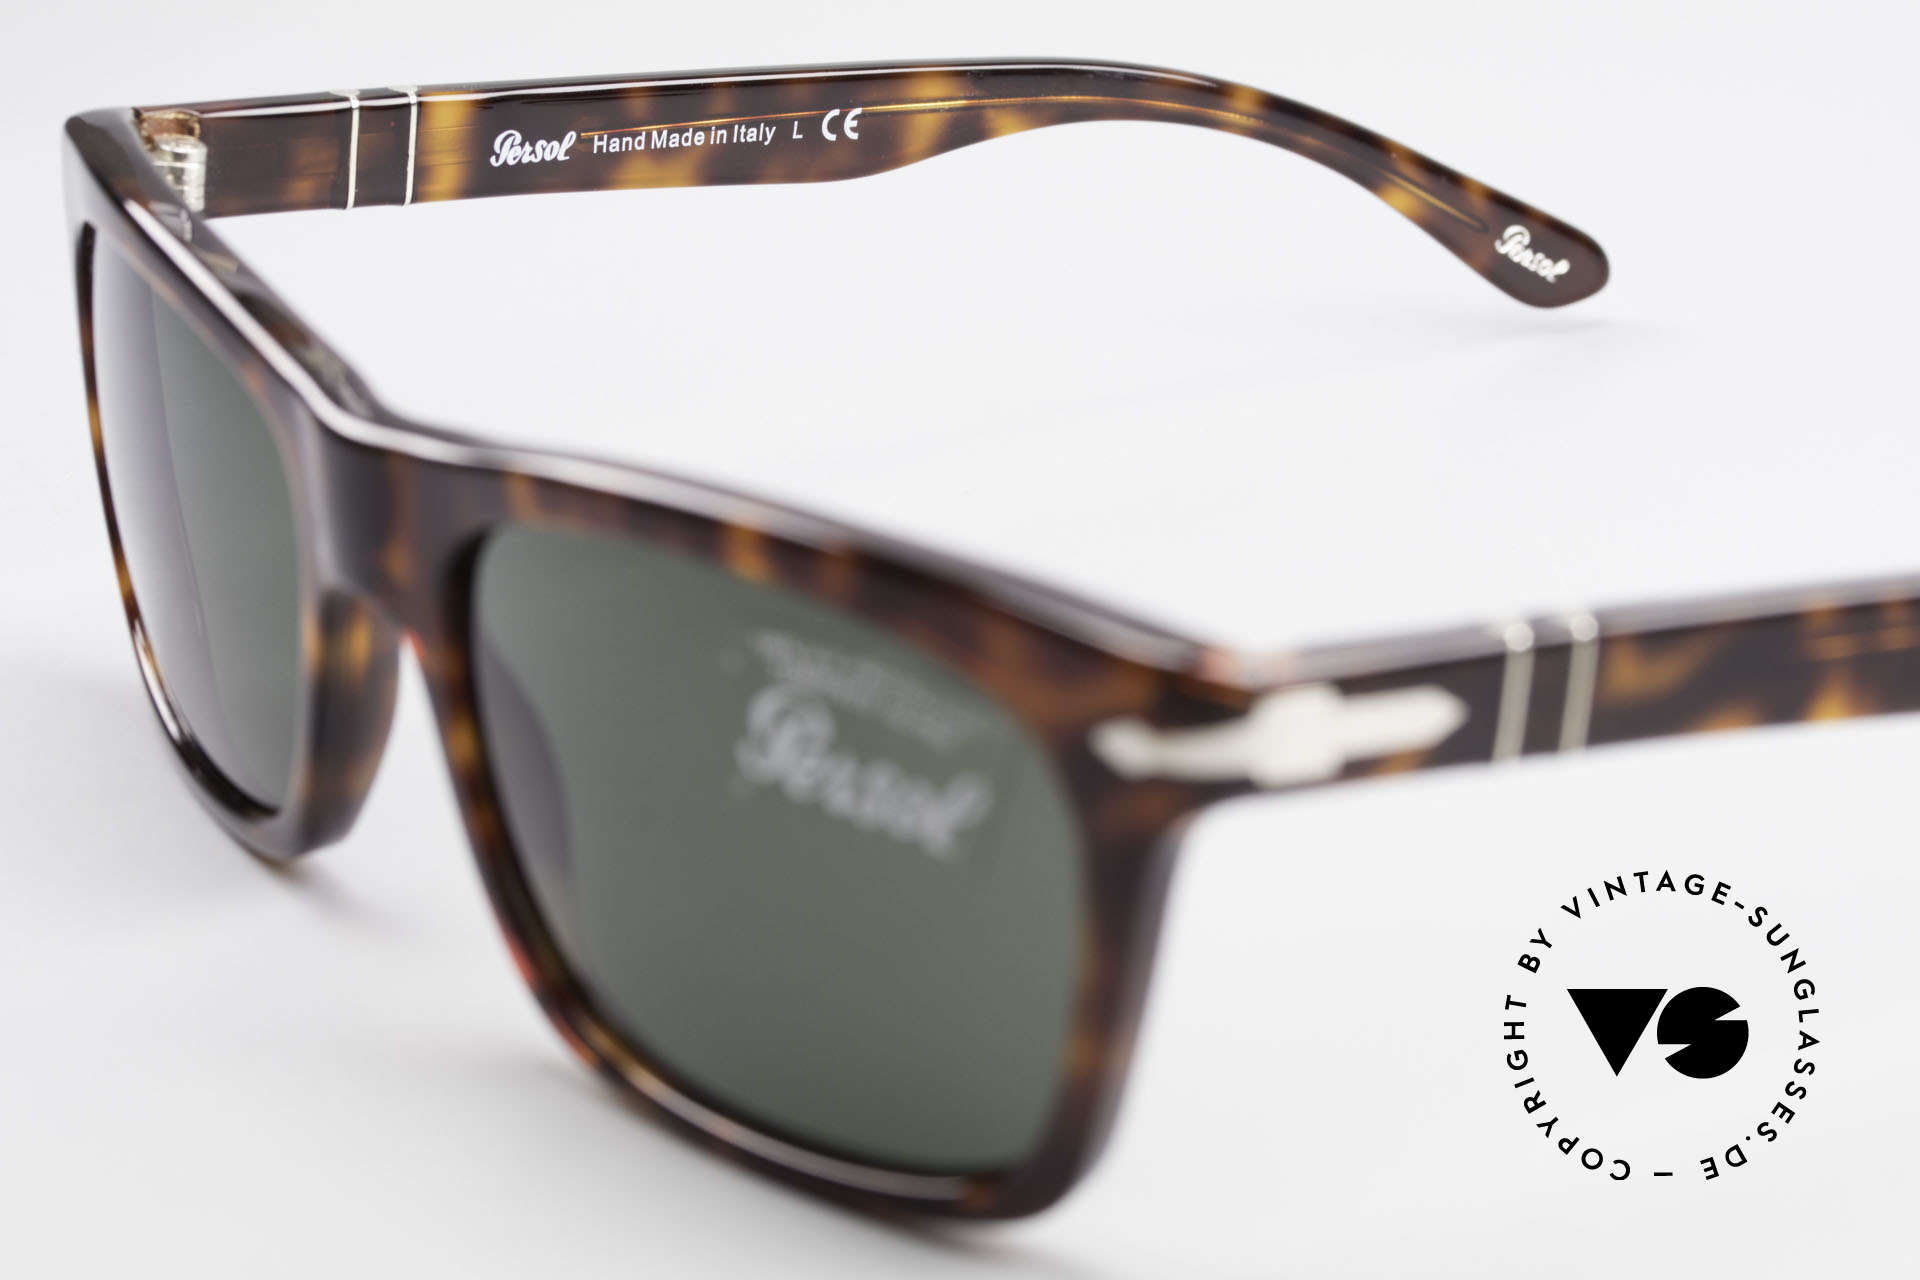 Persol 3062 Classic Unisex Sunglasses, sun lenses could be replaced with prescriptions, Made for Men and Women